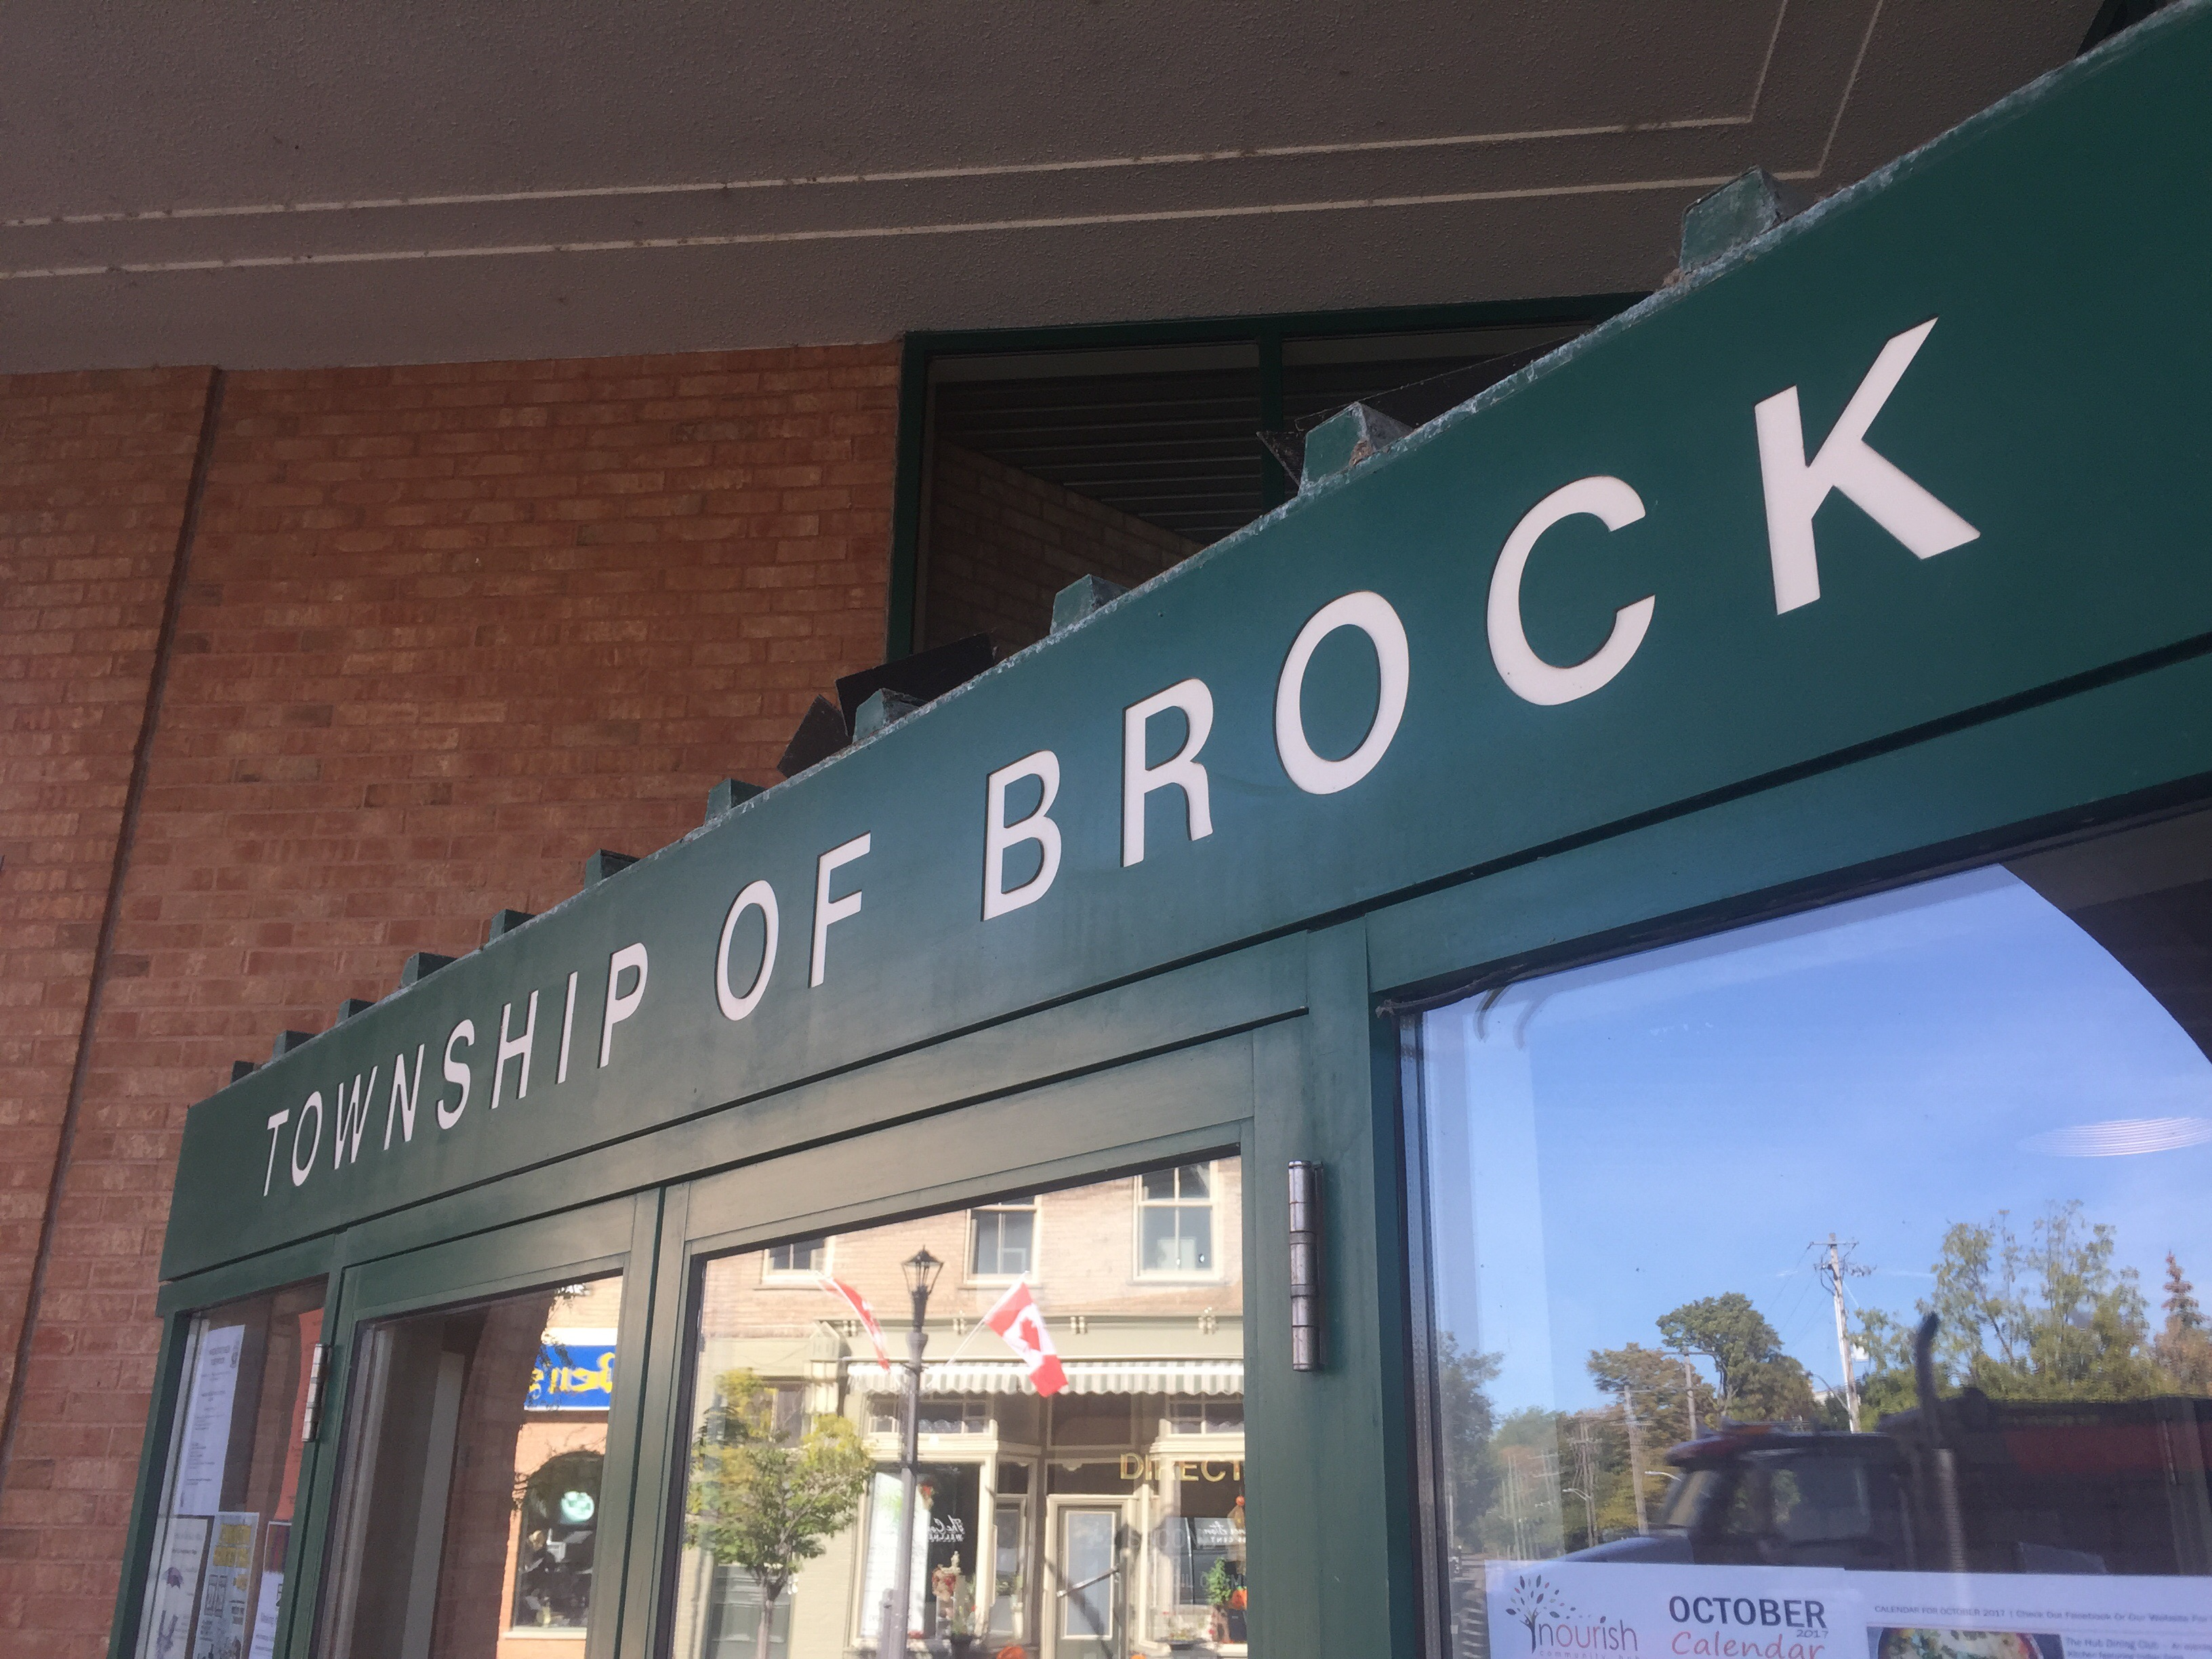 Brock Township getting infrastructure funding boost from the Province